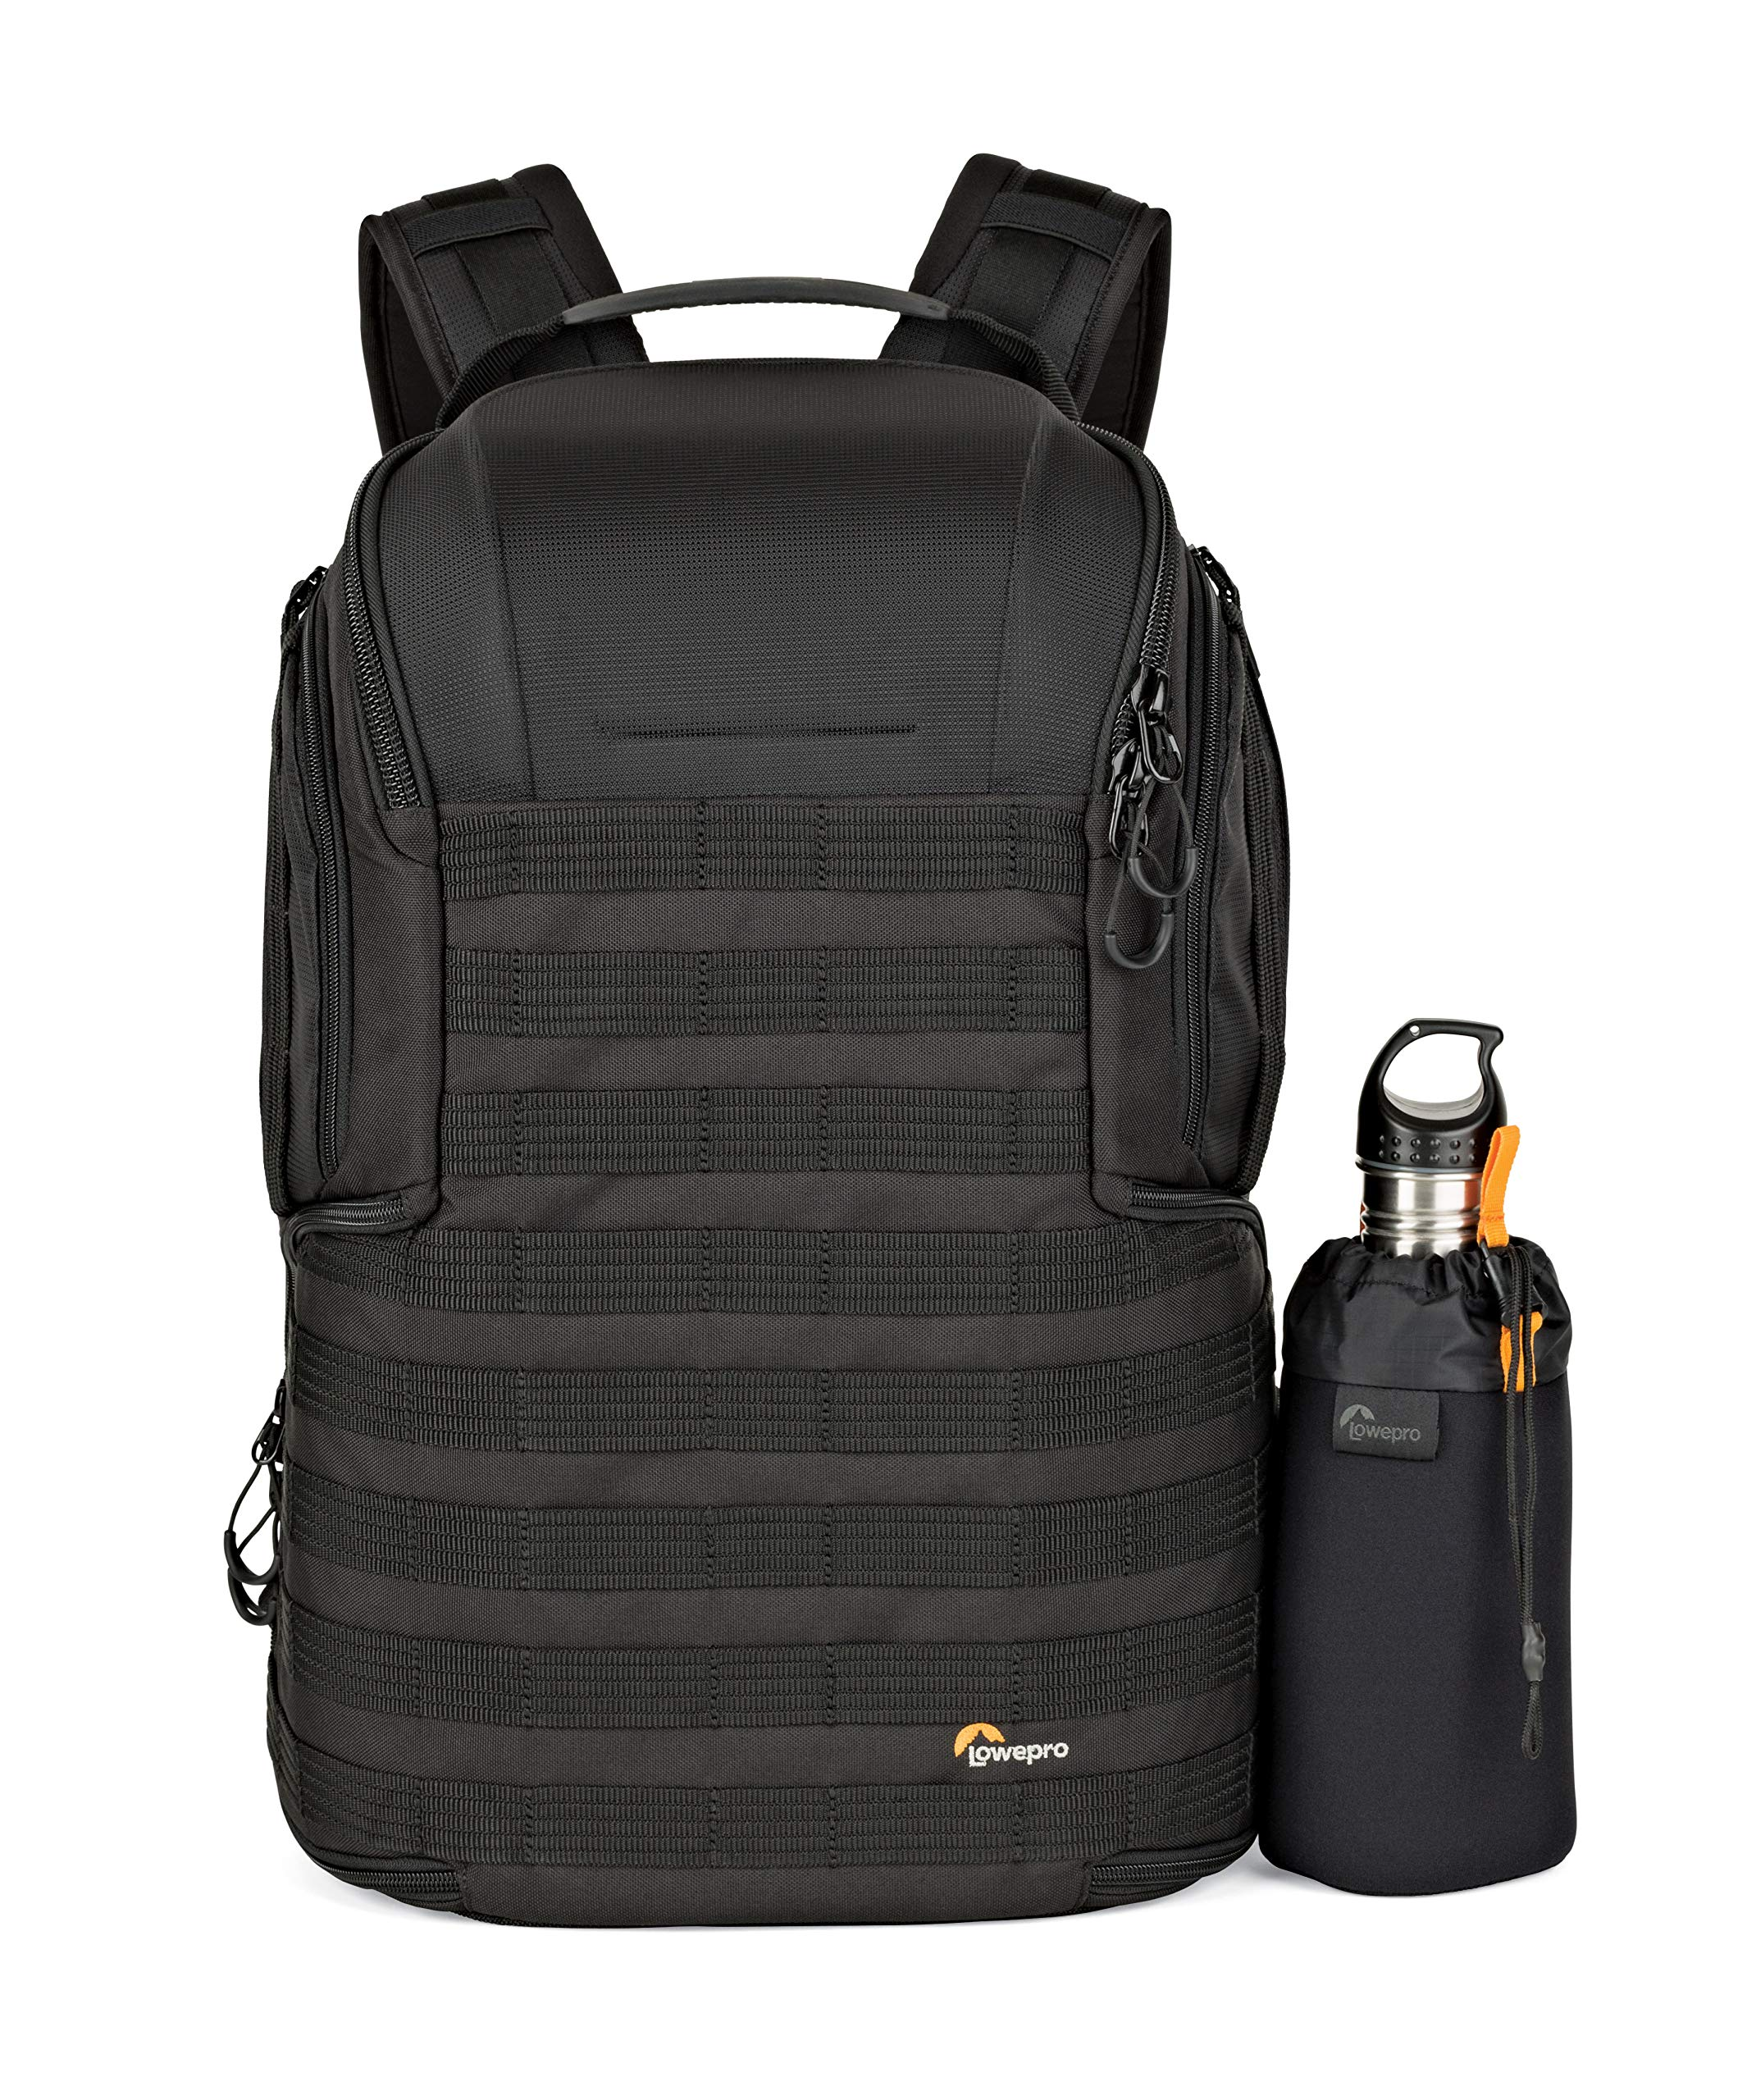 Lowepro ProTactic 350 AW II Black Pro Modular Backpack with All Weather Cover for Laptop Up to 13 Inch, Tablet, Canon/Sony Alpha/Nikon DSLR, Mirrorless CSC and DJI Mavic Drones LP37176-PWW by Lowepro (Image #14)